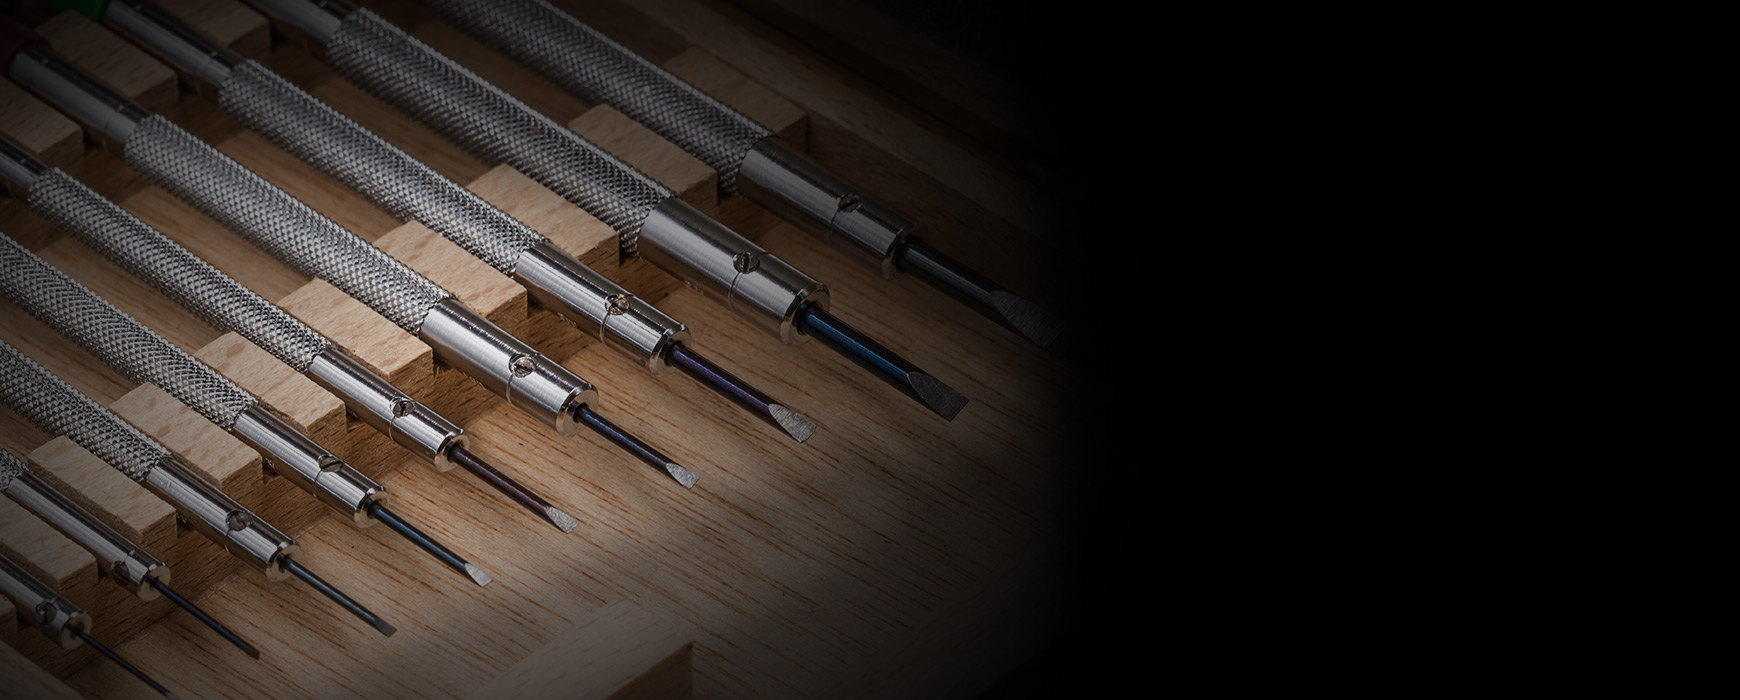 Outils Horlogers Outils Horlogers